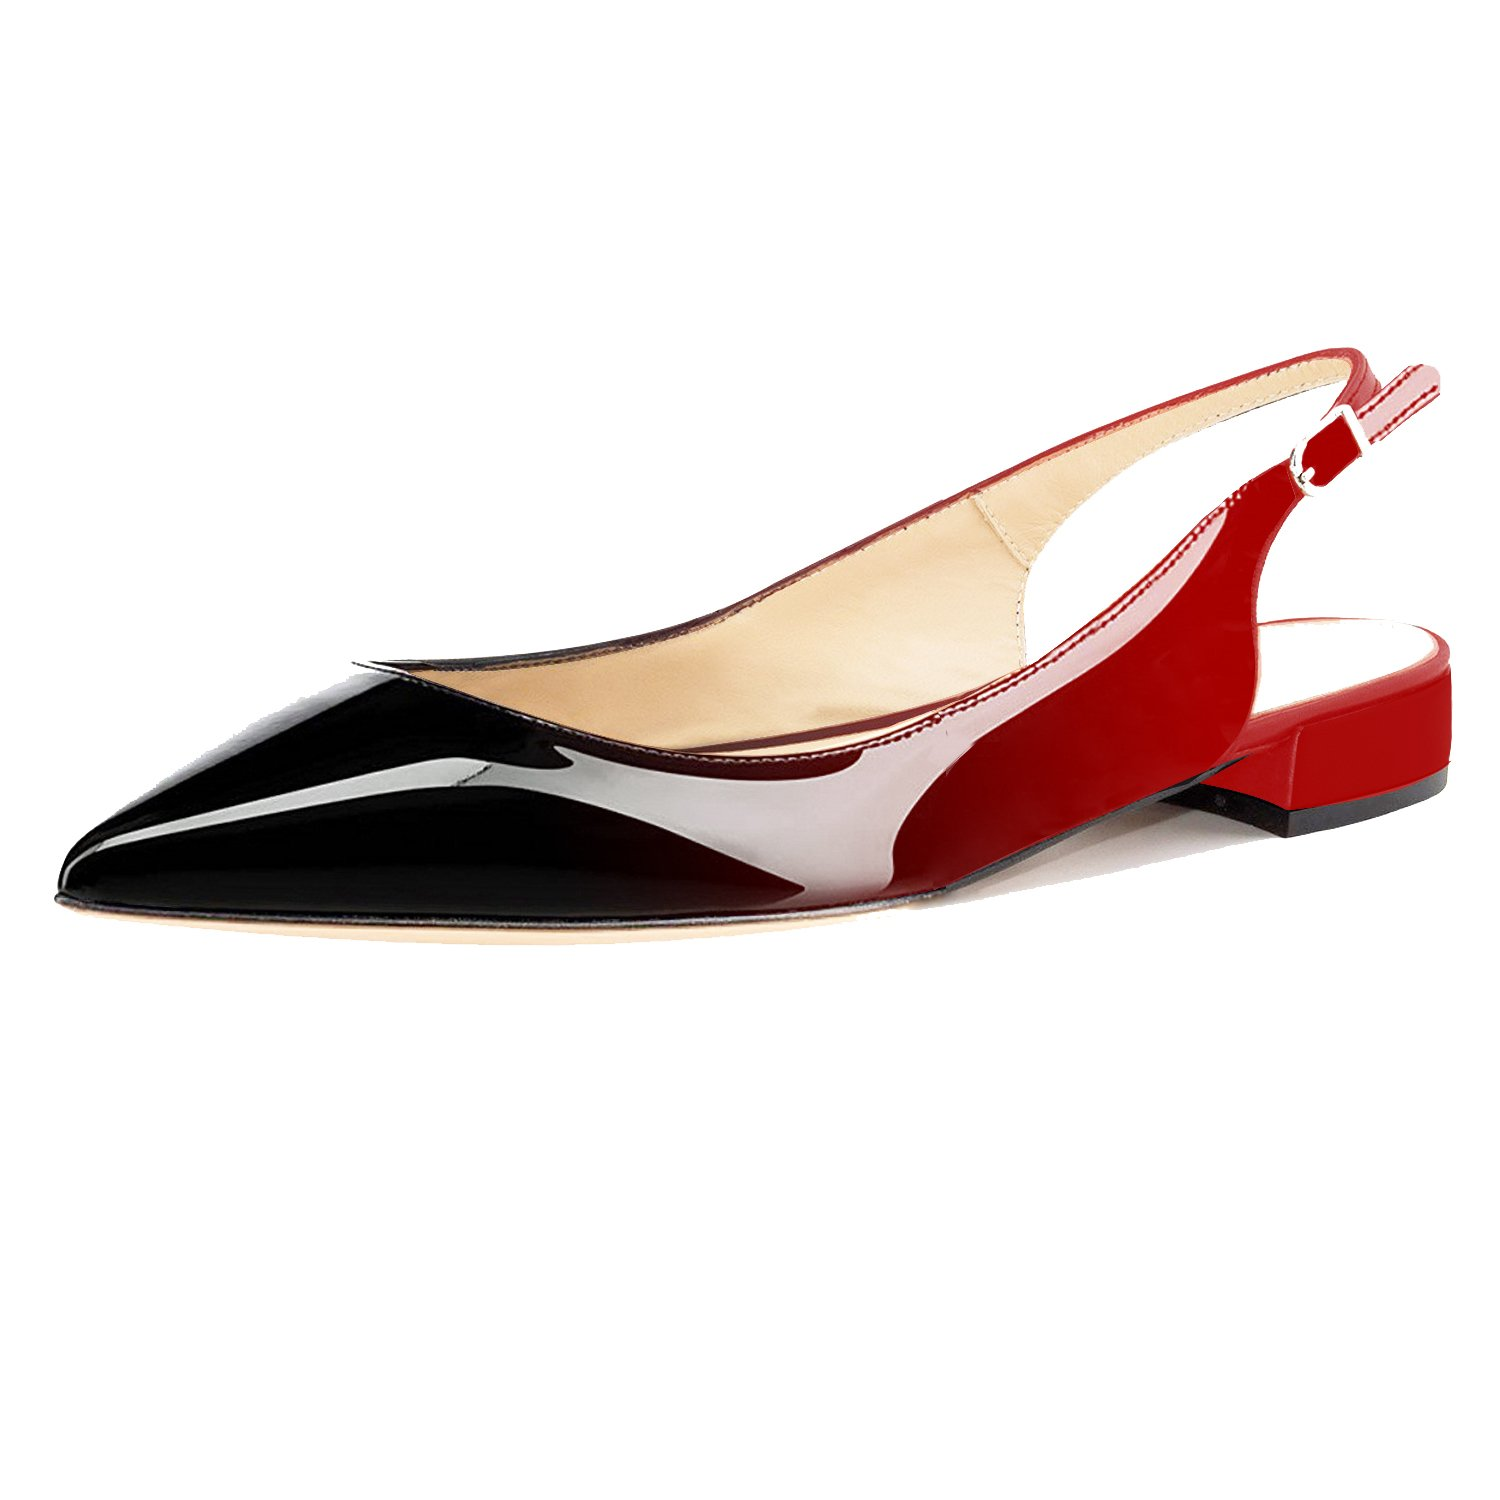 Eldof Women Low Heels Pumps | Pointed Toe Slingback Flat Pumps | 2cm Classic Elegante Court Shoes B07C89K7JK 9.5 B(M) US|Black-red